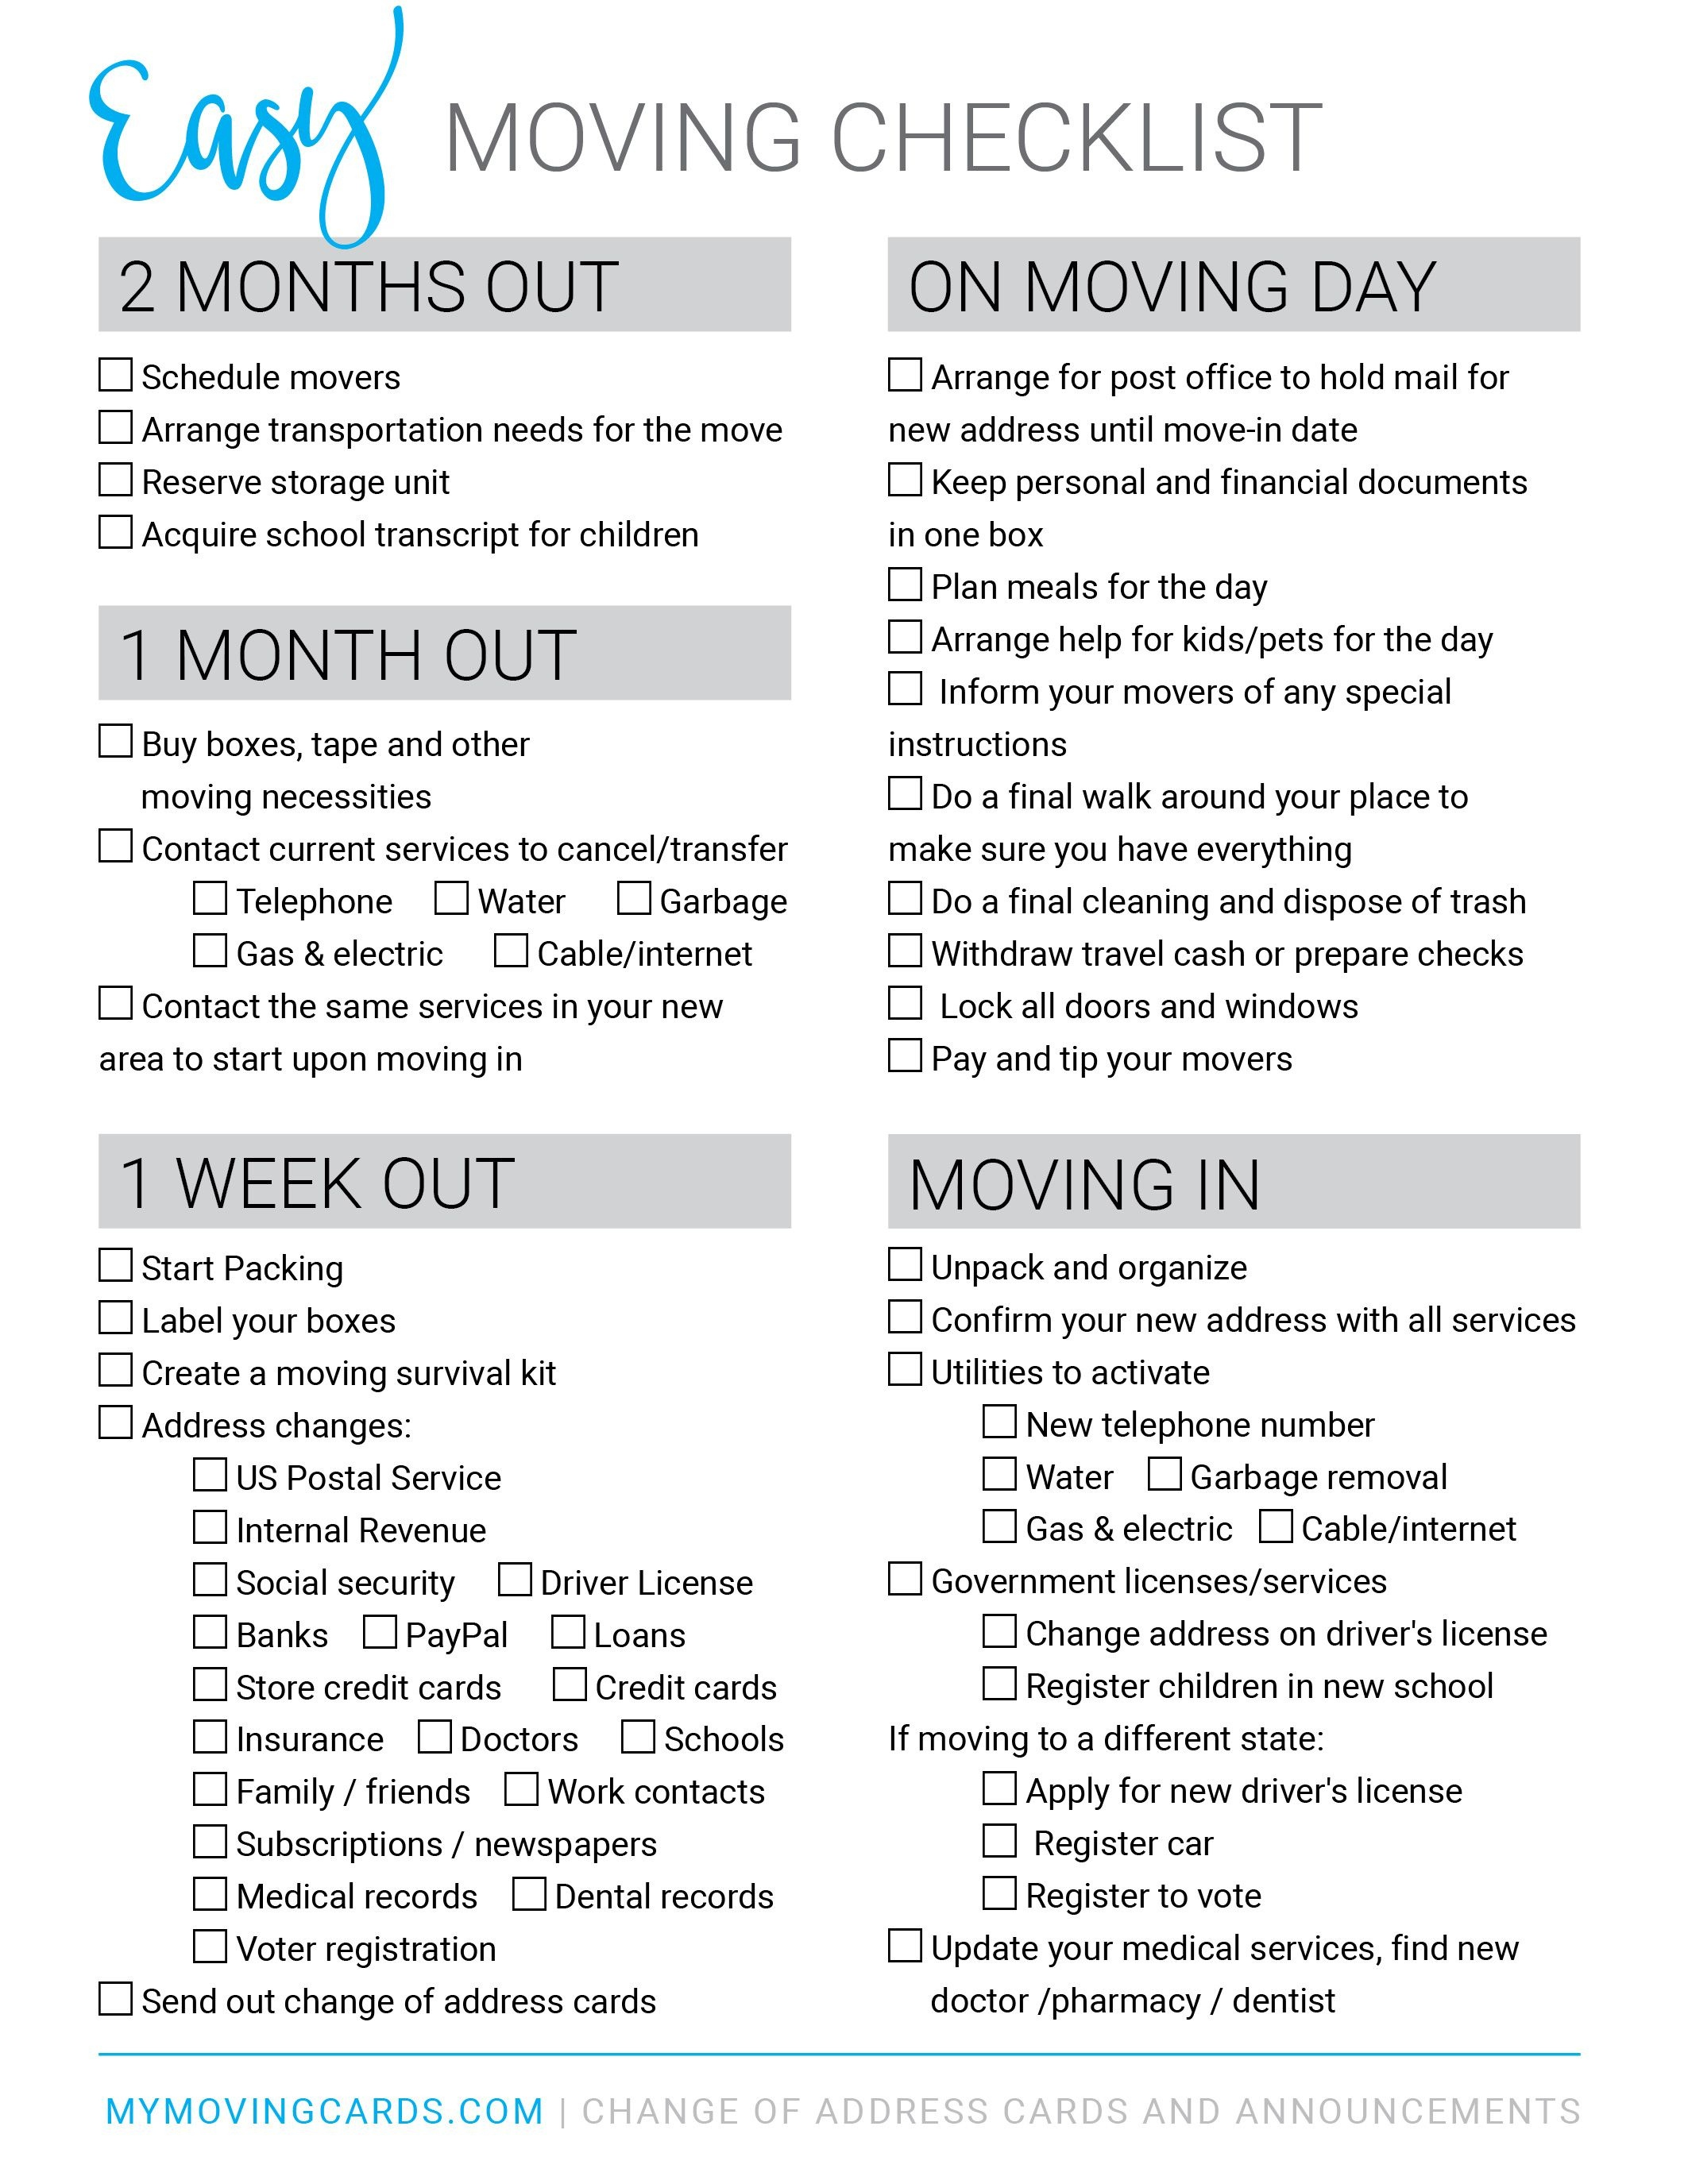 Moving Checklist - Free Printable Download | Moving Cards In 2019 - Free Printable Change Of Address Cards